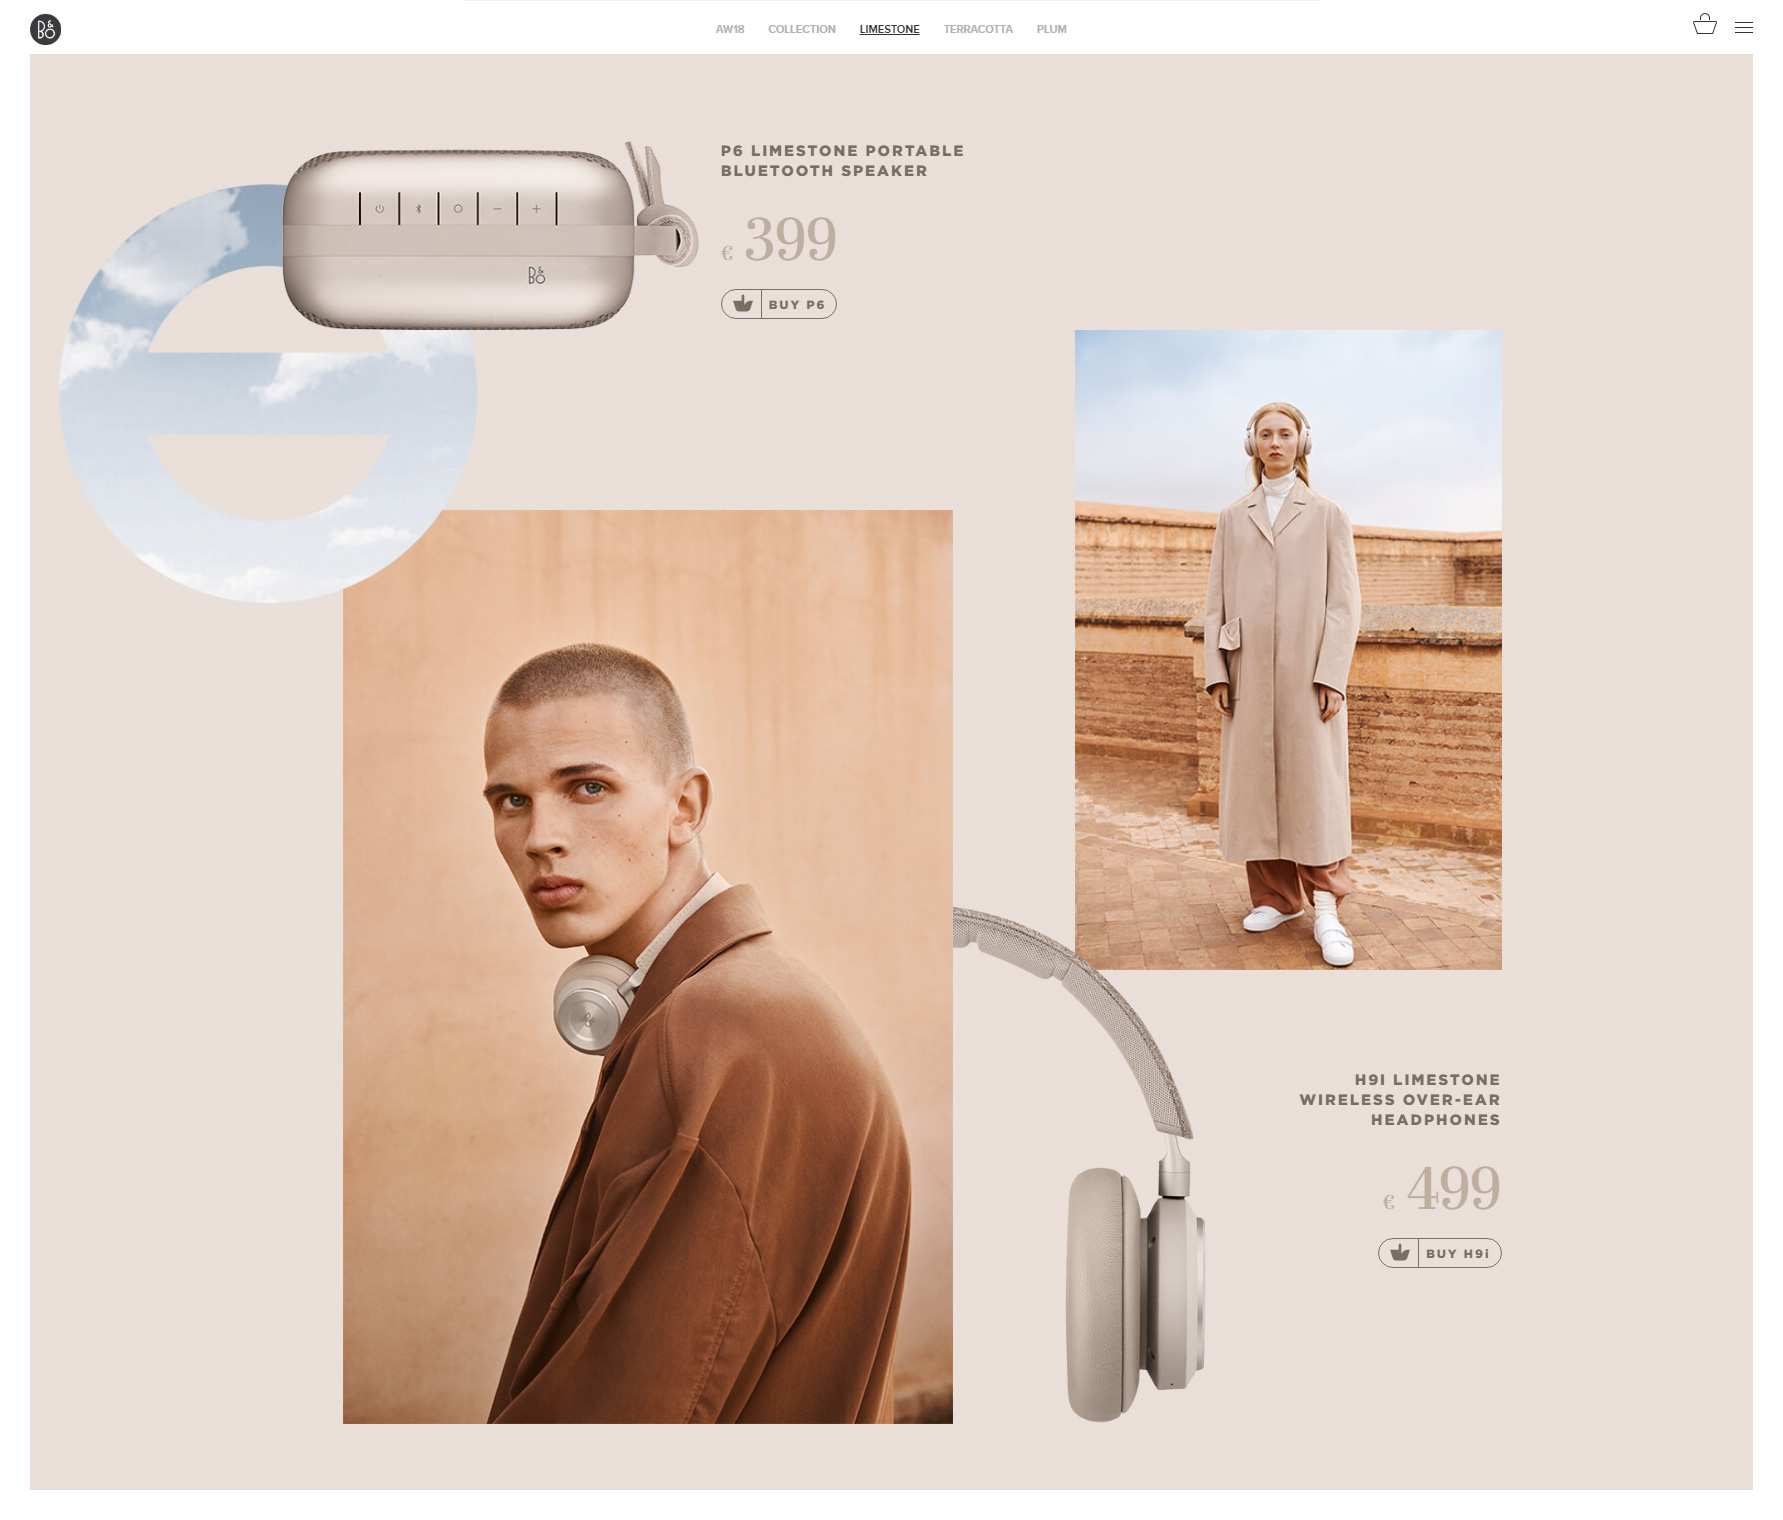 Bang & Olufsen AW18 - Website of the Day